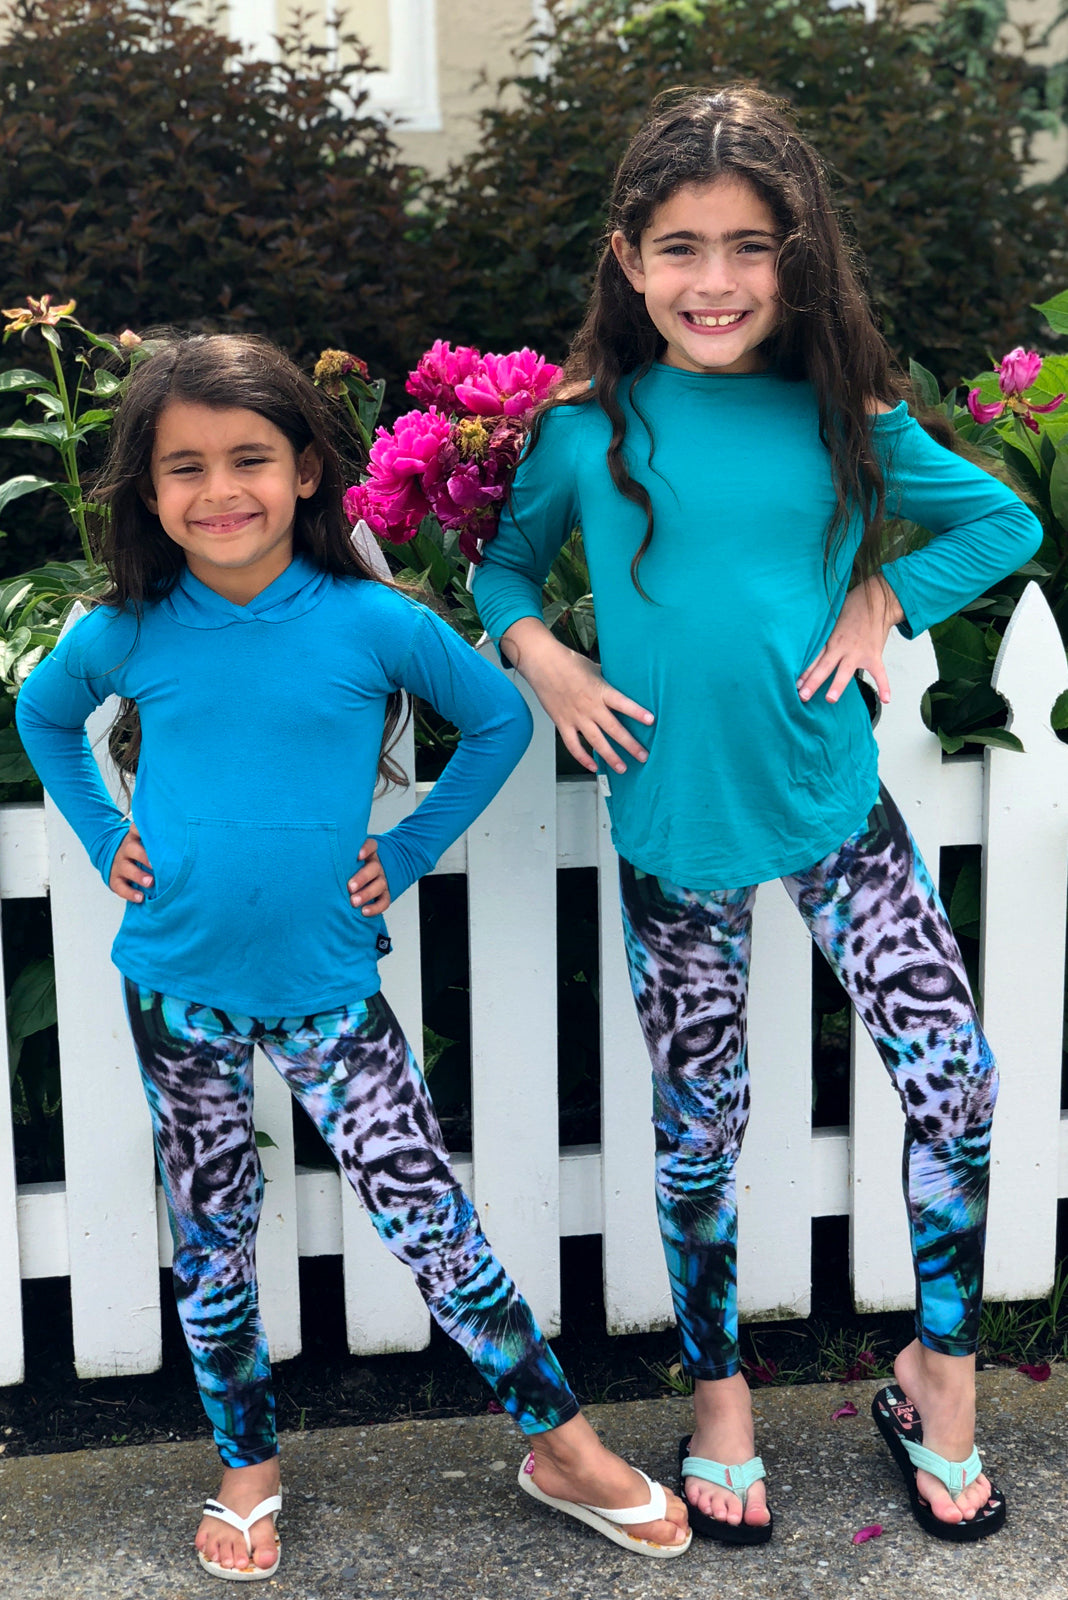 Turquoise Siberian Tiger Legging for Kids